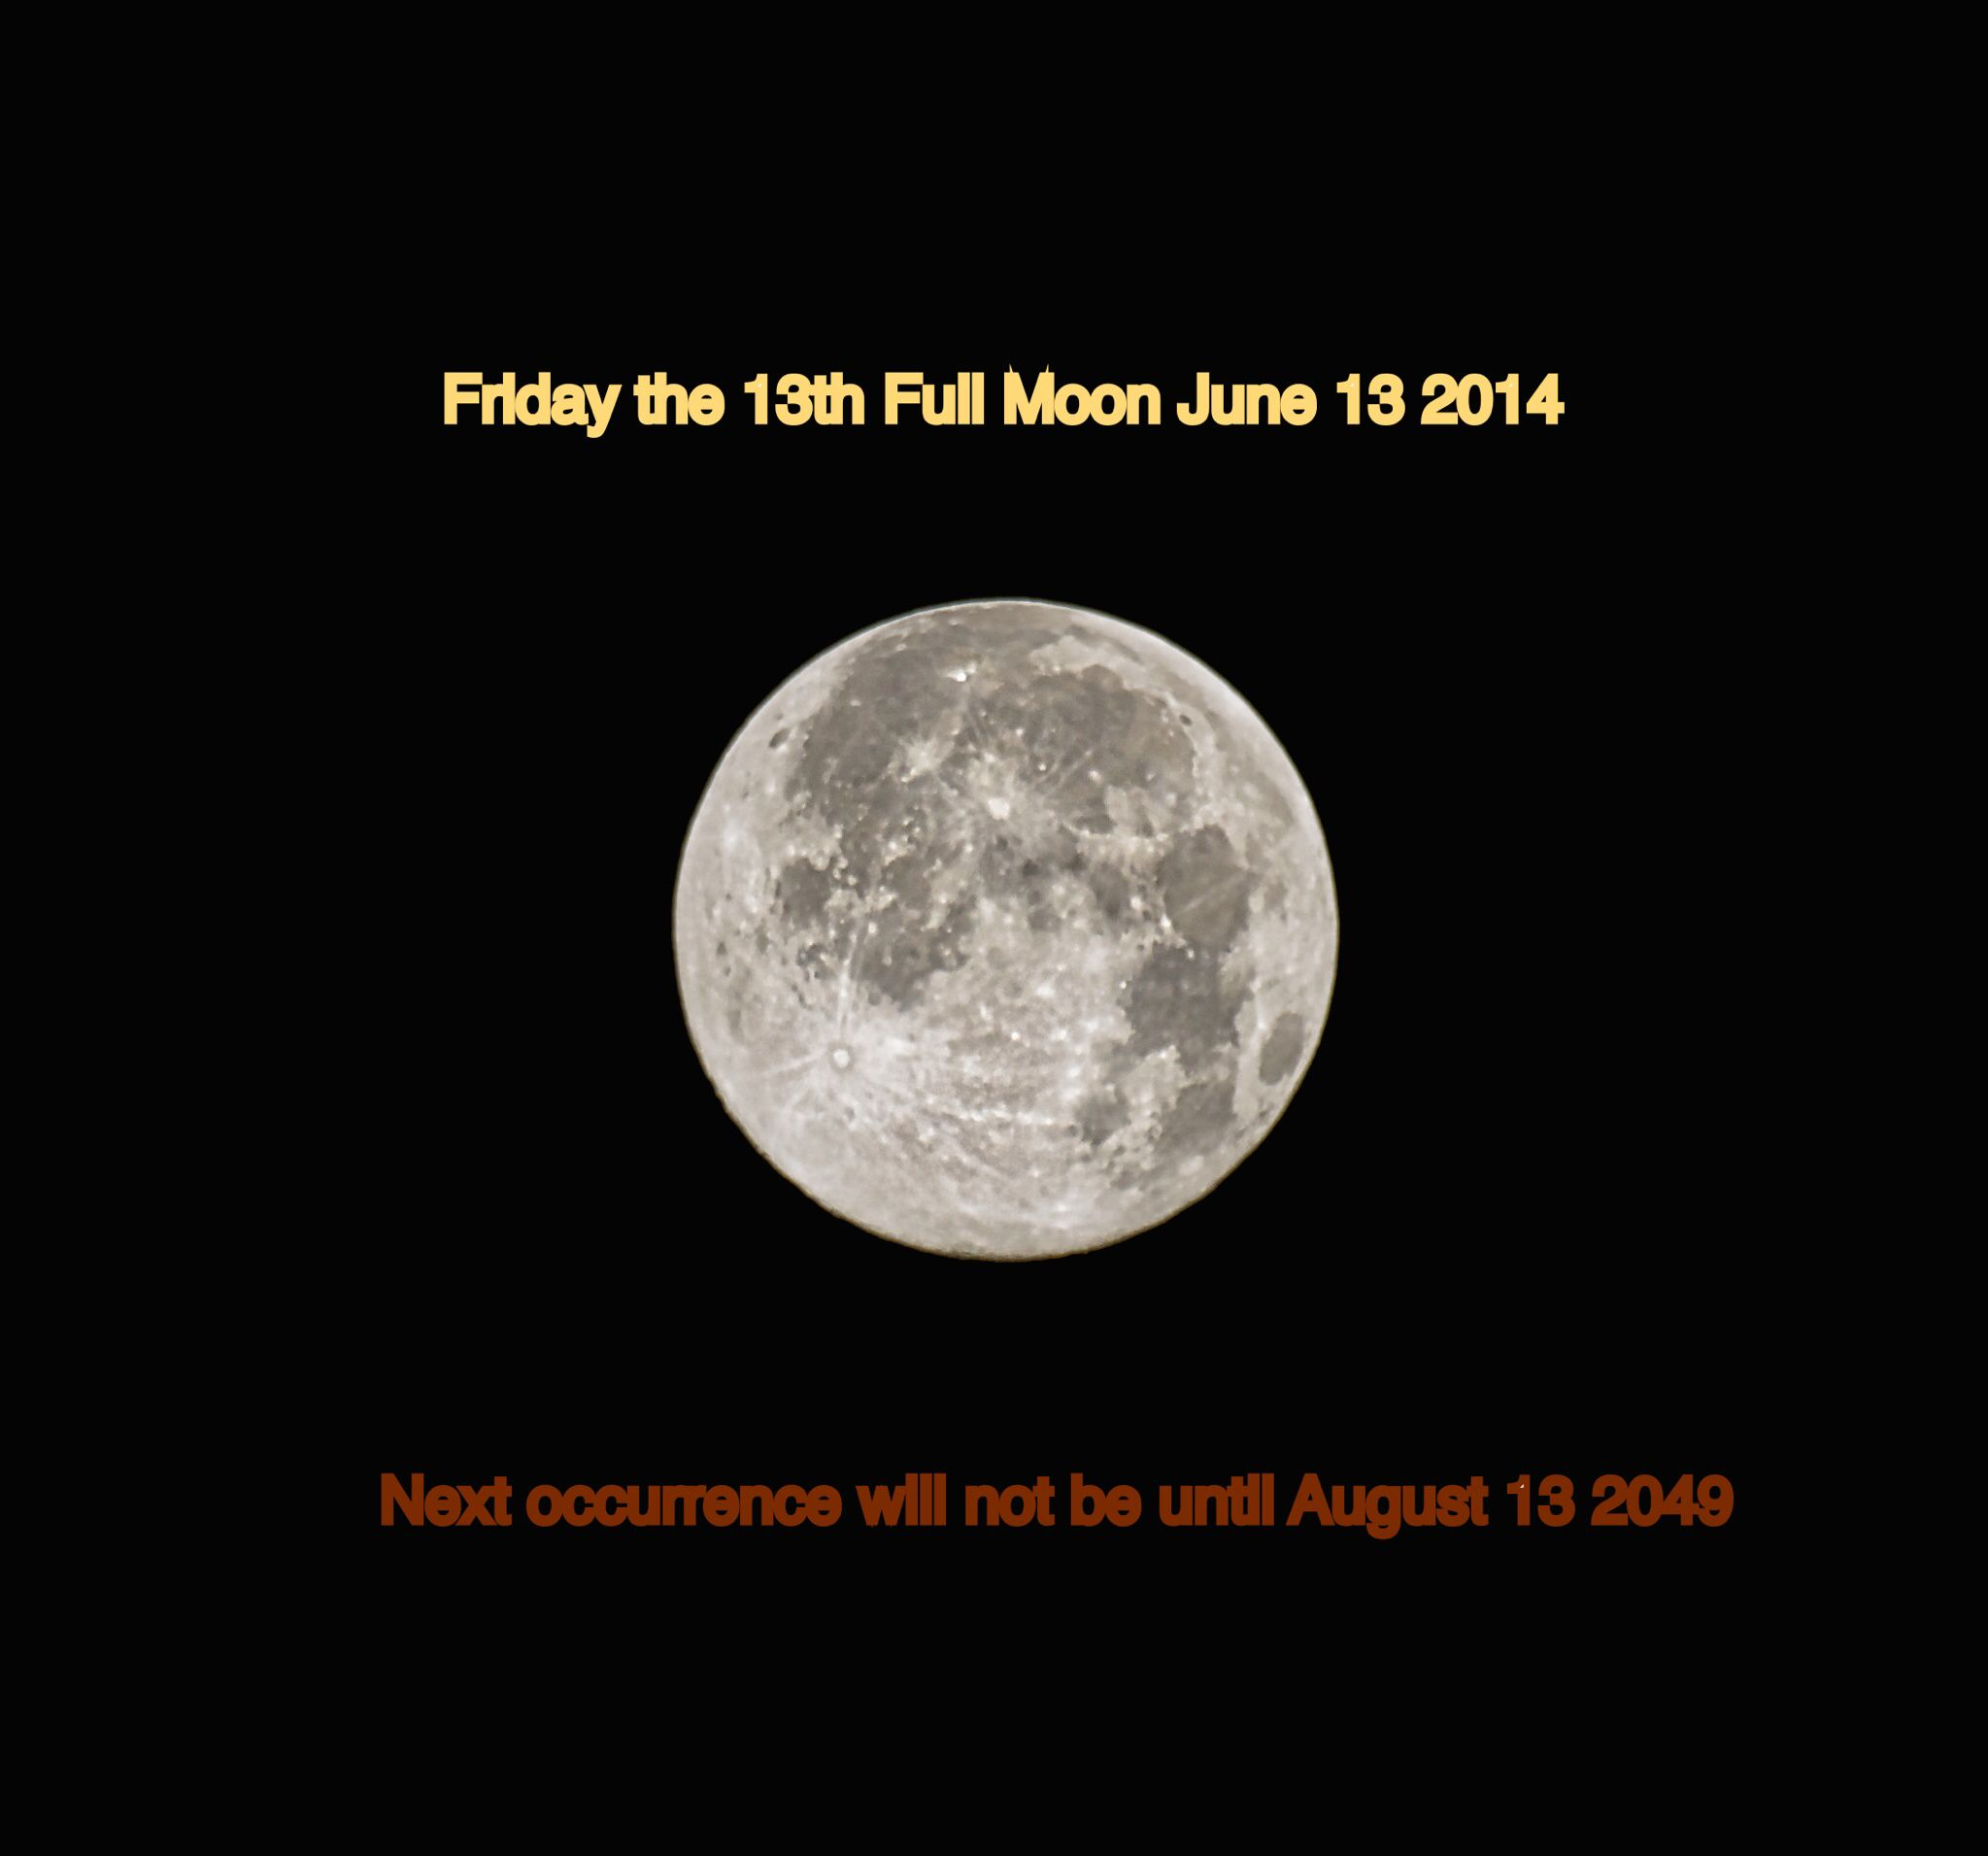 Friday the 13th Full Moon. (With images) Full moon june